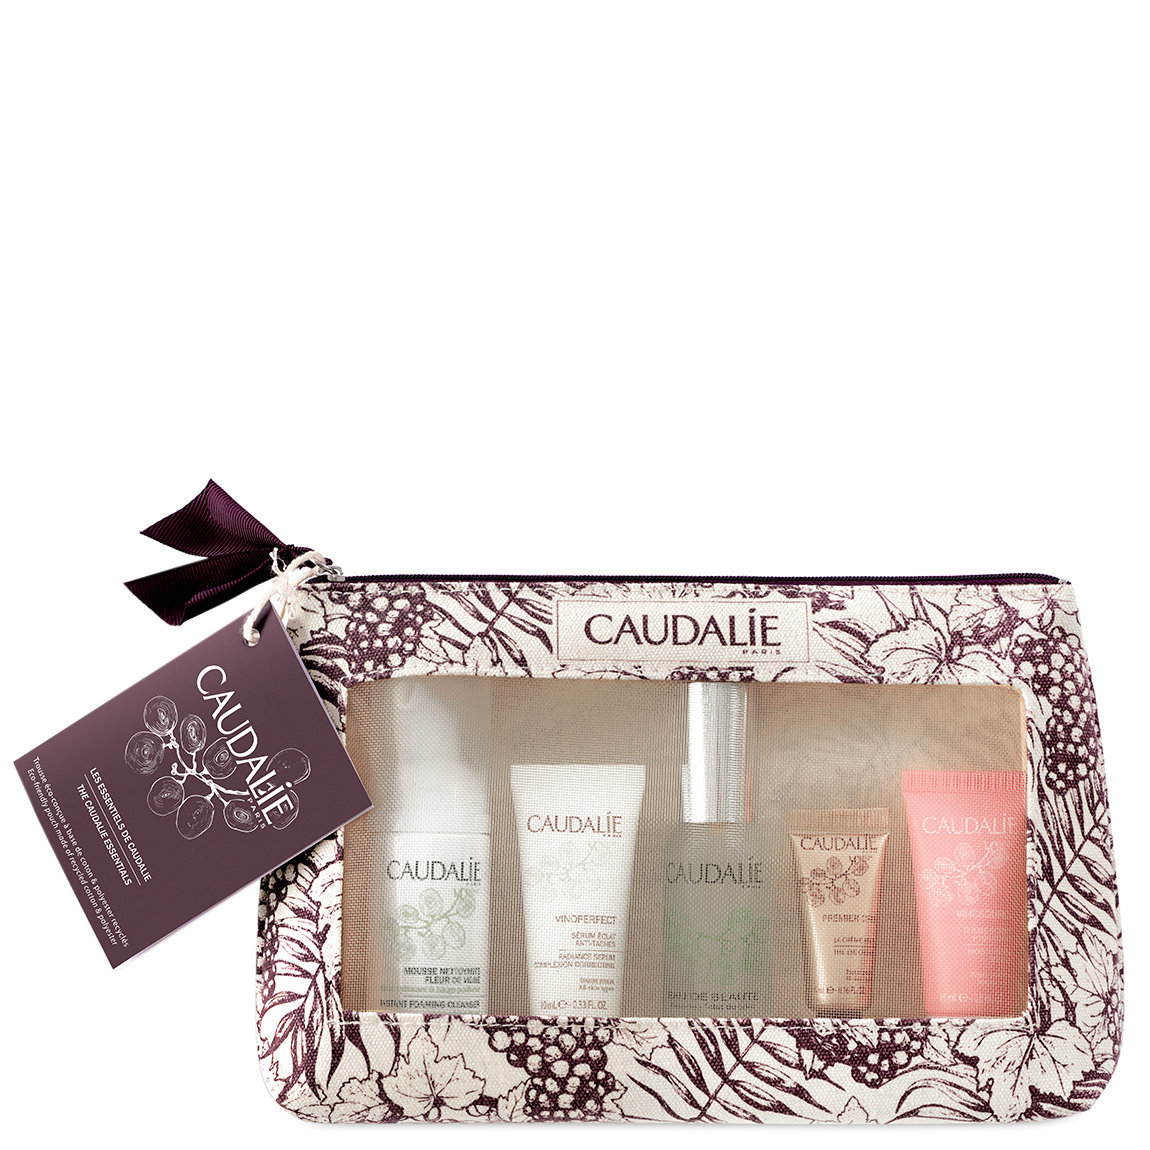 Caudalie Caudalie Favorites Set product swatch.